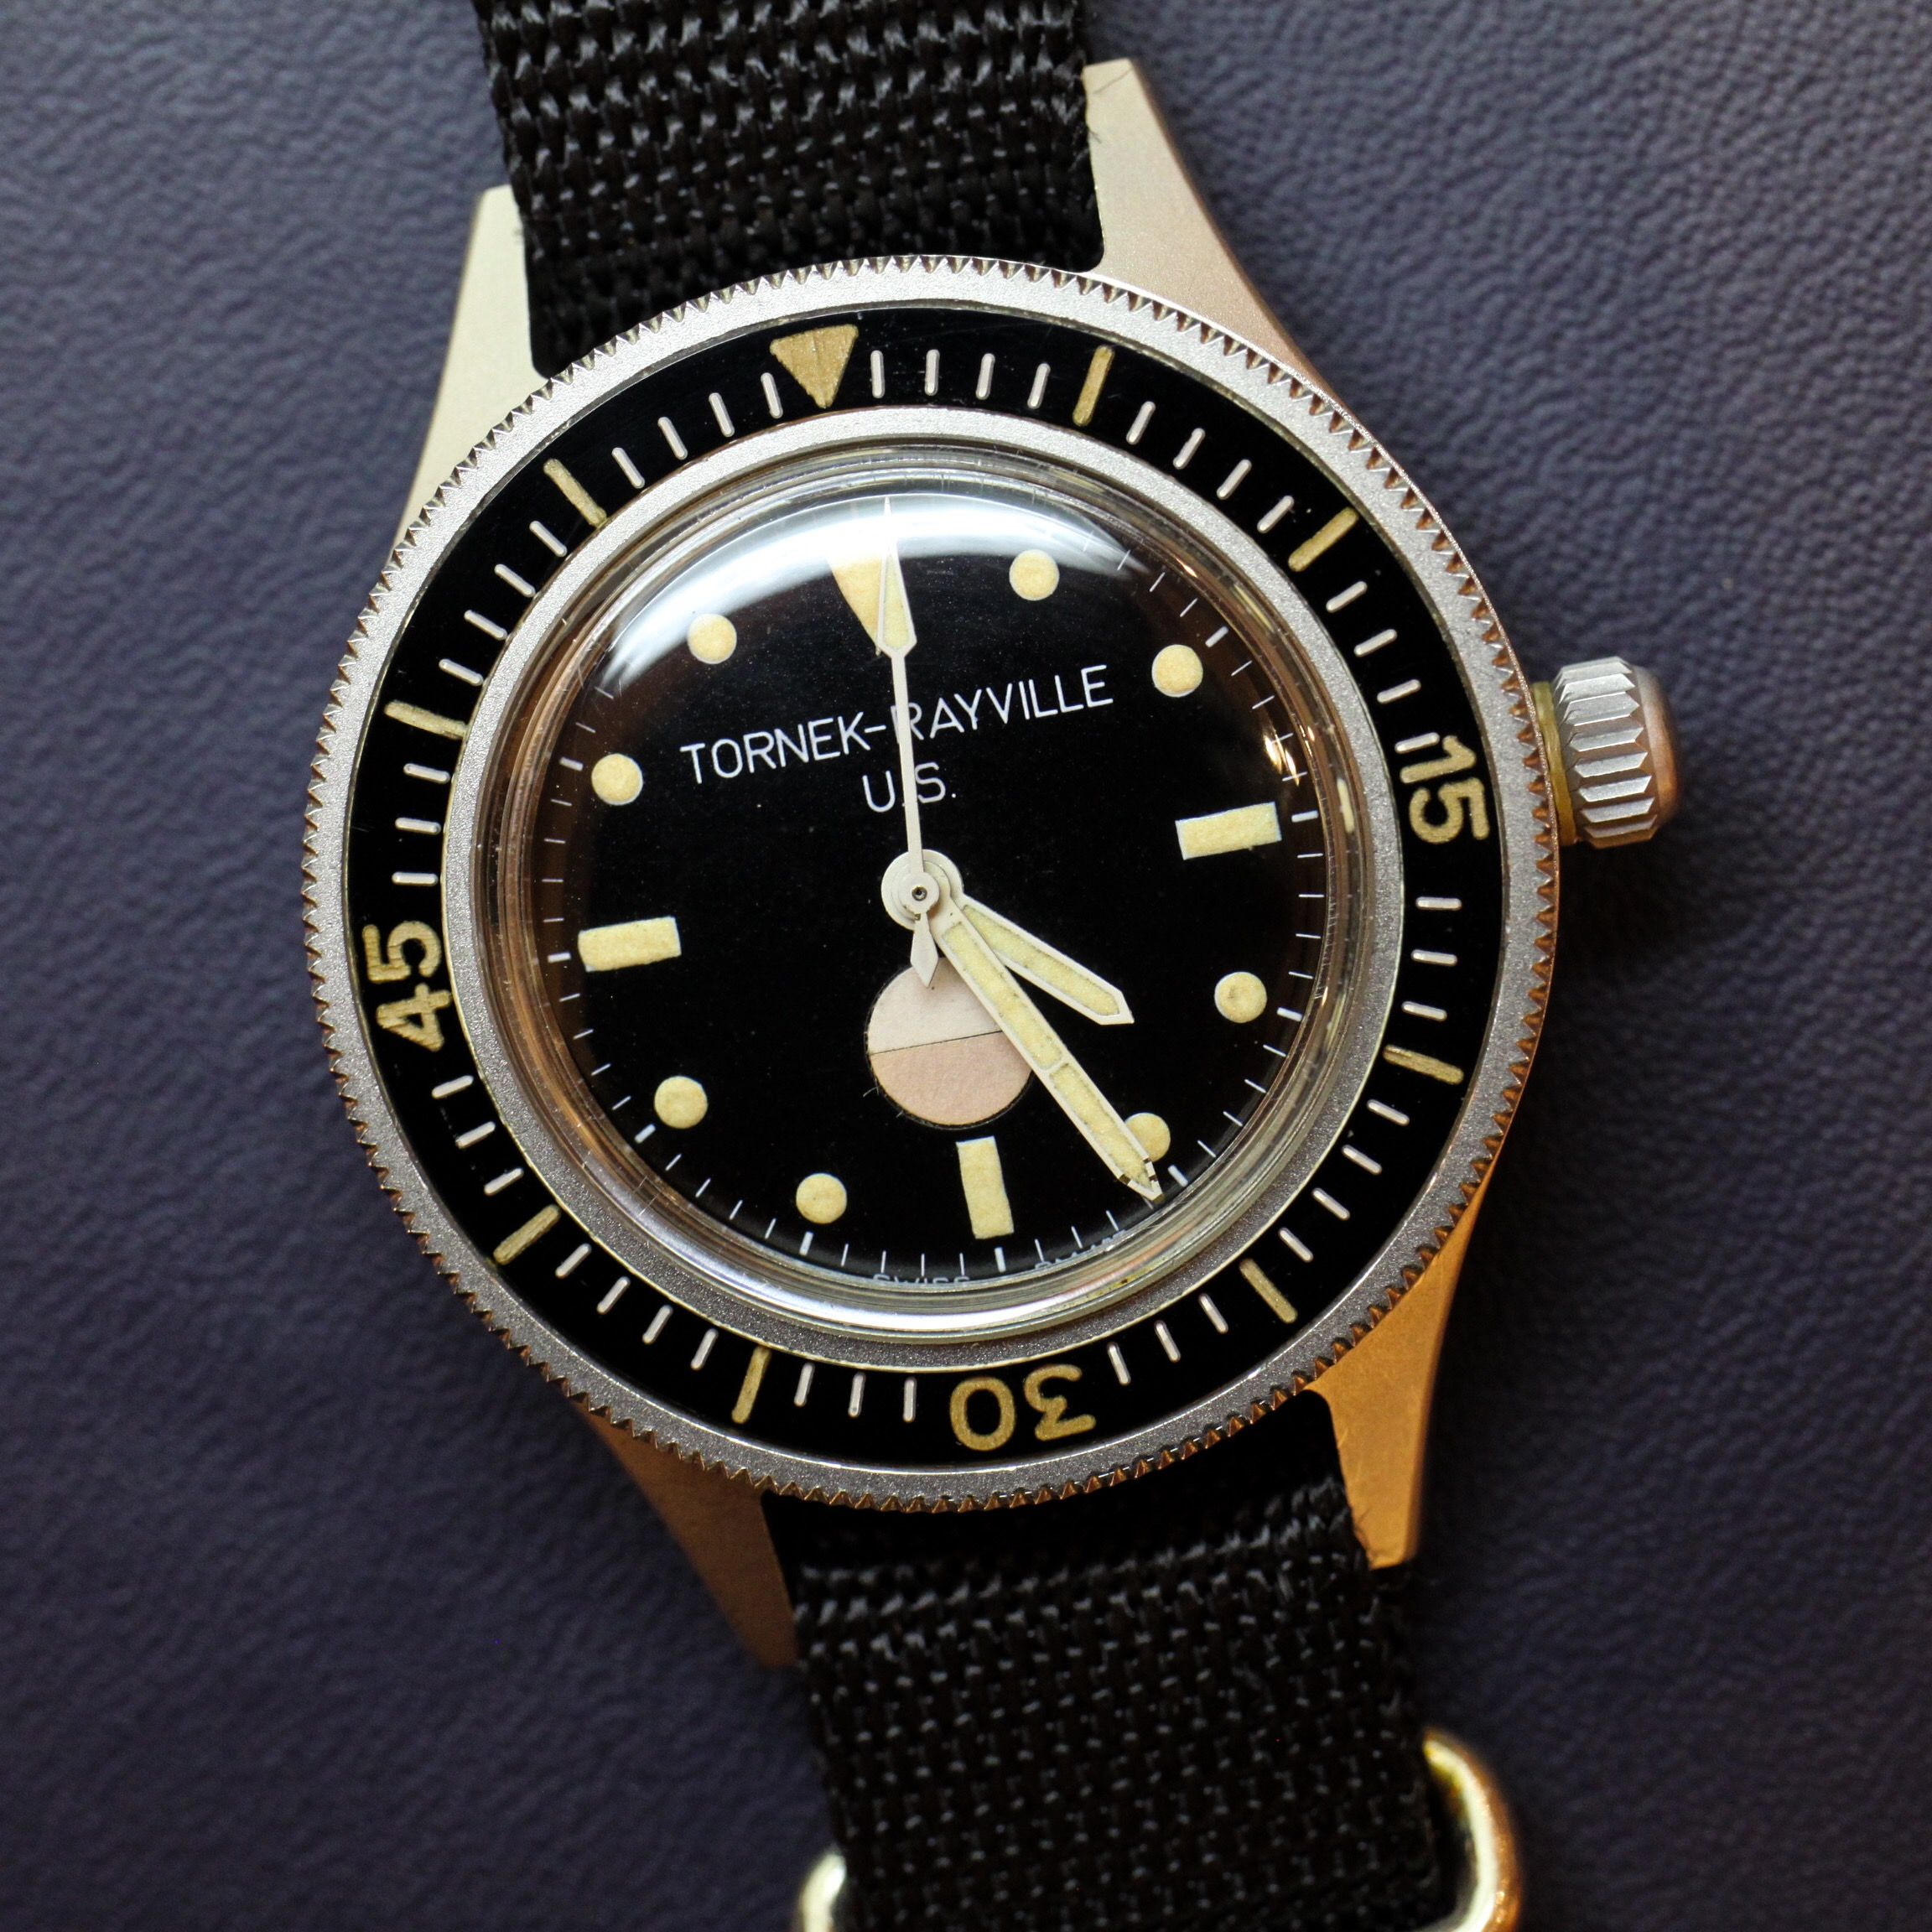 123553a9cda Blancpain Fifty Fathoms made for the U.S. Navy and signed Tornek-Rayville   blancpain